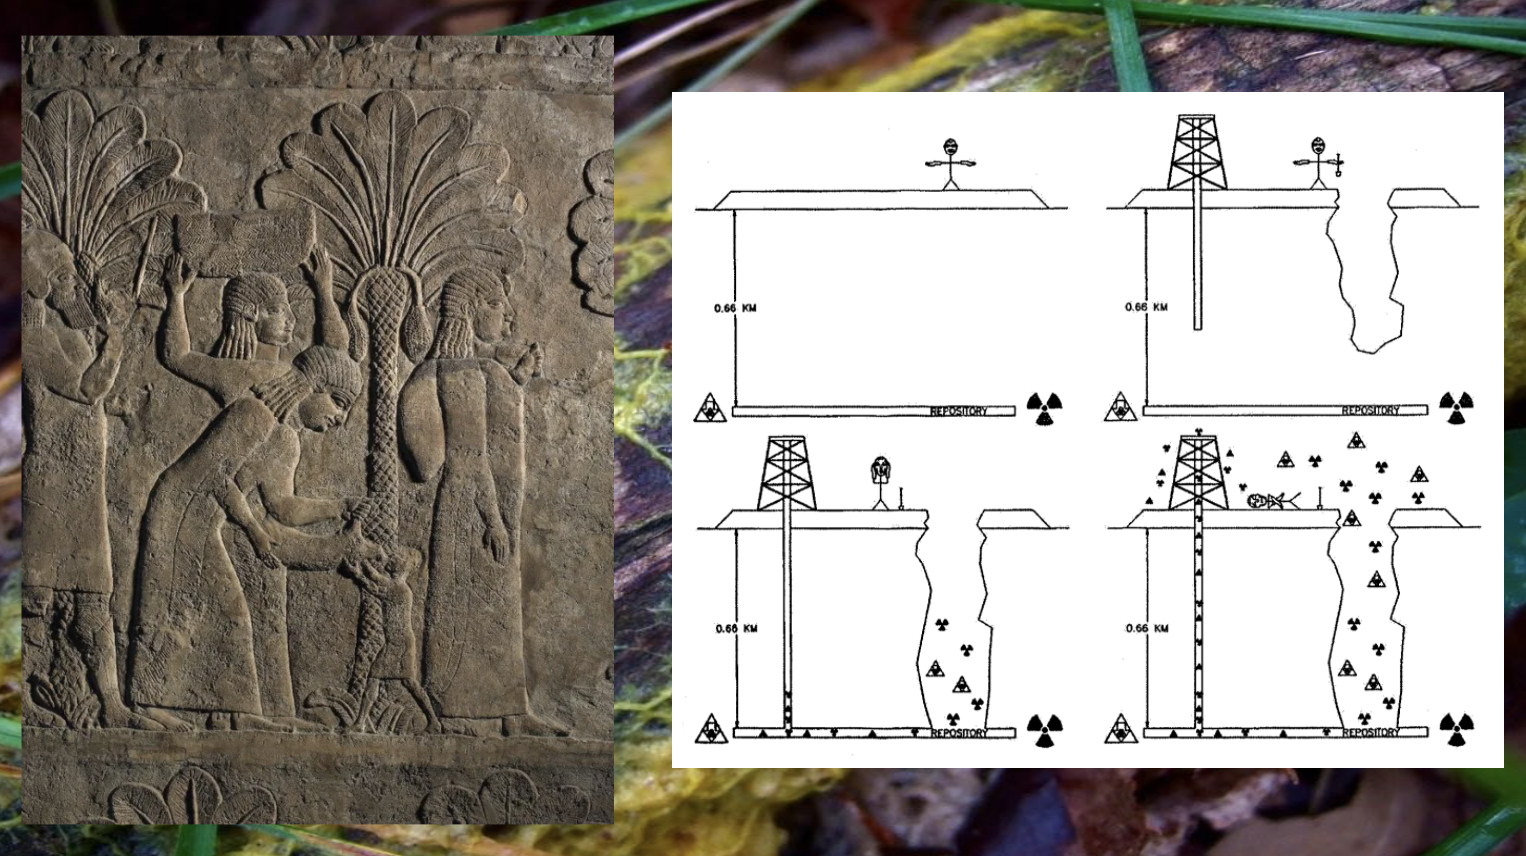 Left: Date harvest, Mesopotamia, right: USA Department of Energy: Pictogram for nuclear sites warning messages, background: Physarum Polycephalum (slime mould), photo: Lucia Pietroiusti